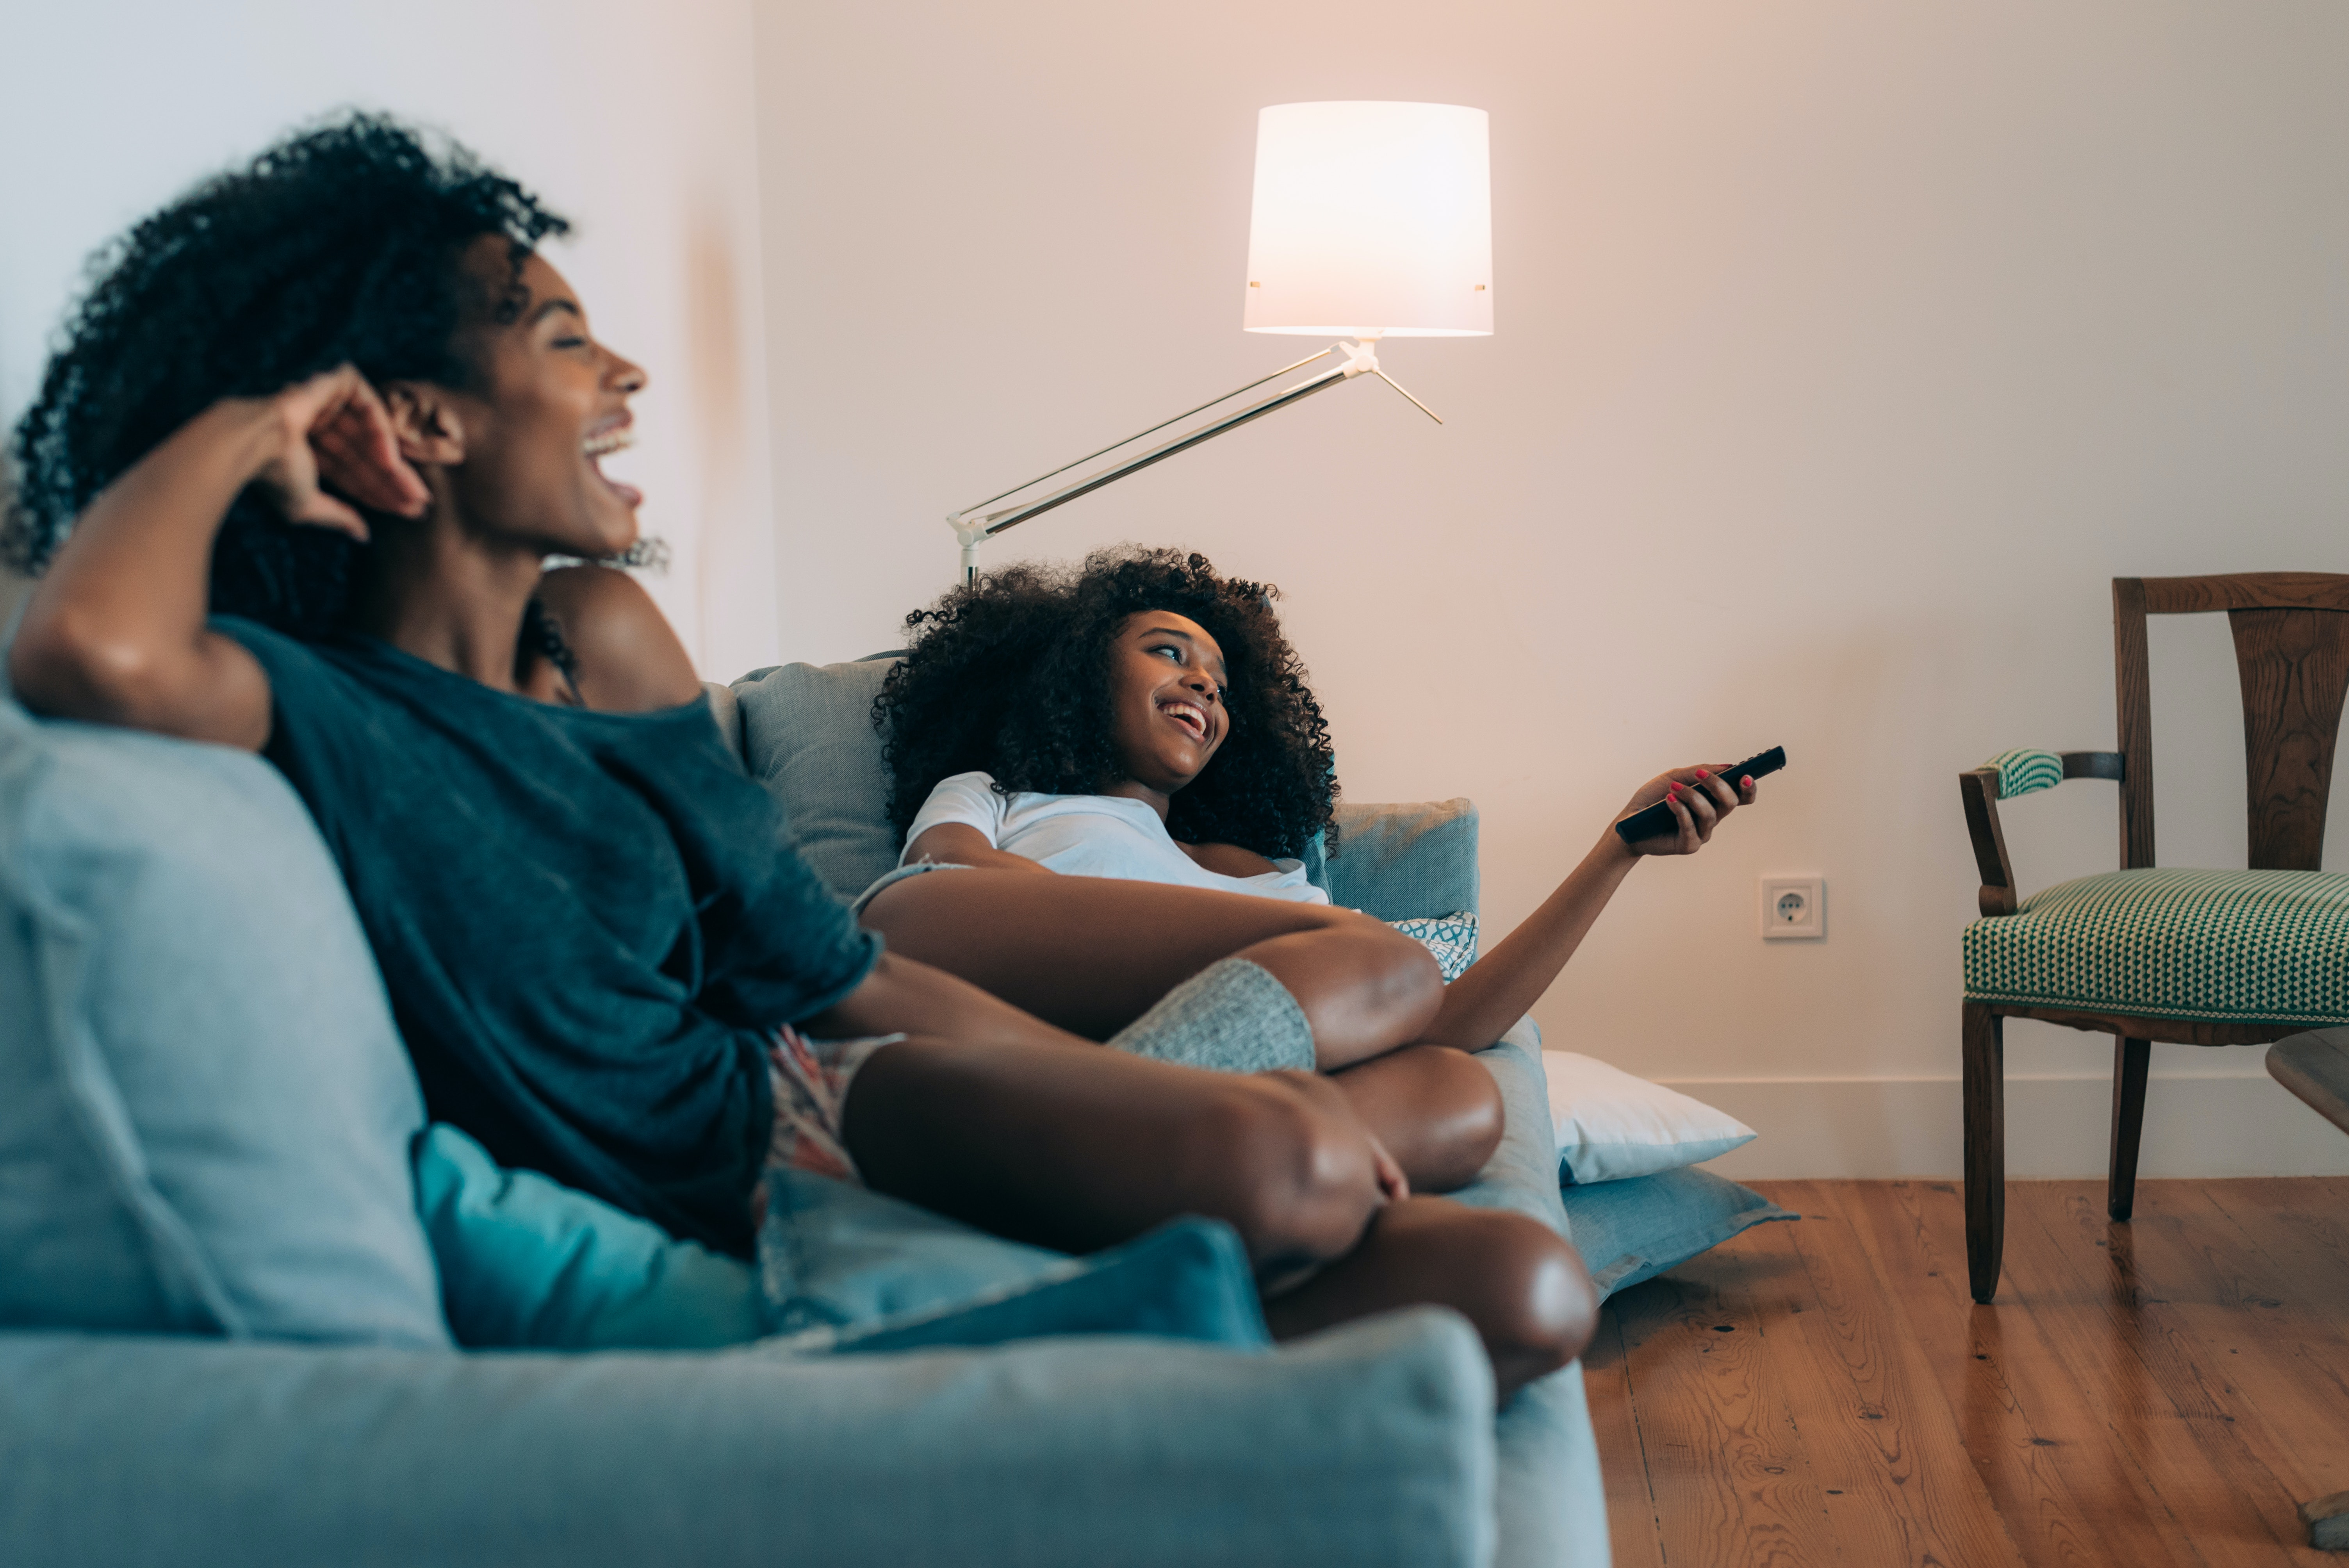 What Are The Psychological Effects Of Watching TV? 7 Subtle